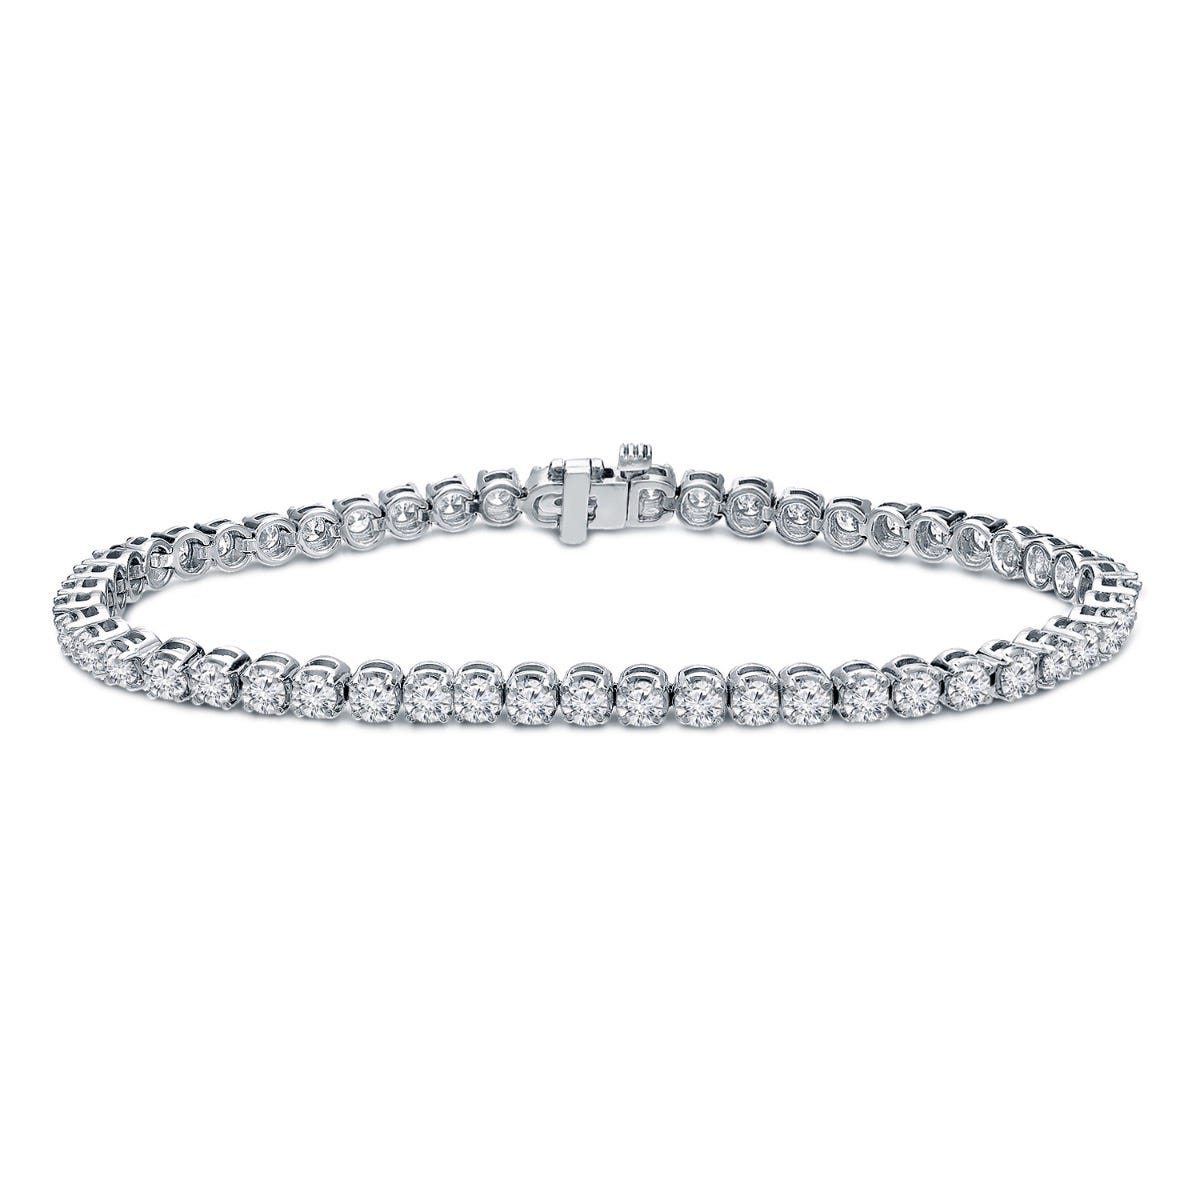 2.50ctw. 4-Prong Round Link Diamond Tennis Bracelet in 14K White Gold (HI, SI1-SI2)